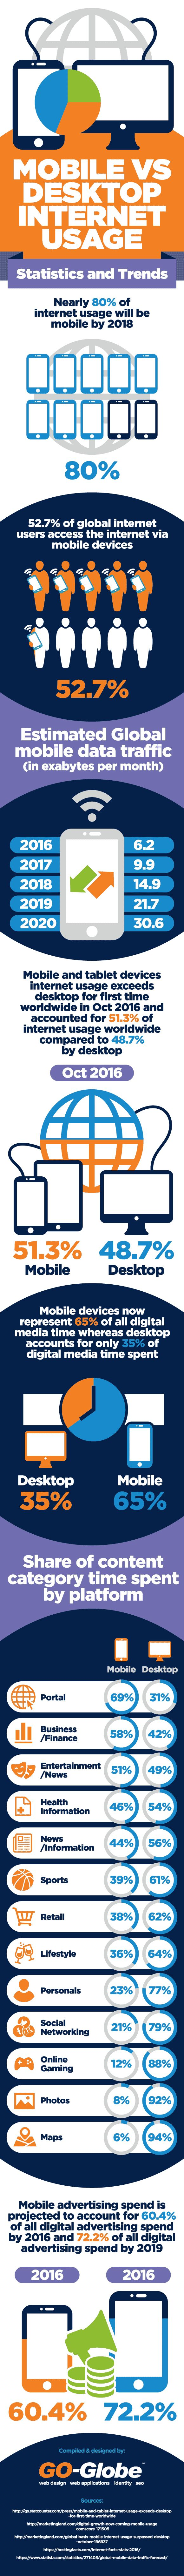 The Rise In Internet And Mobile Phones - Infographic